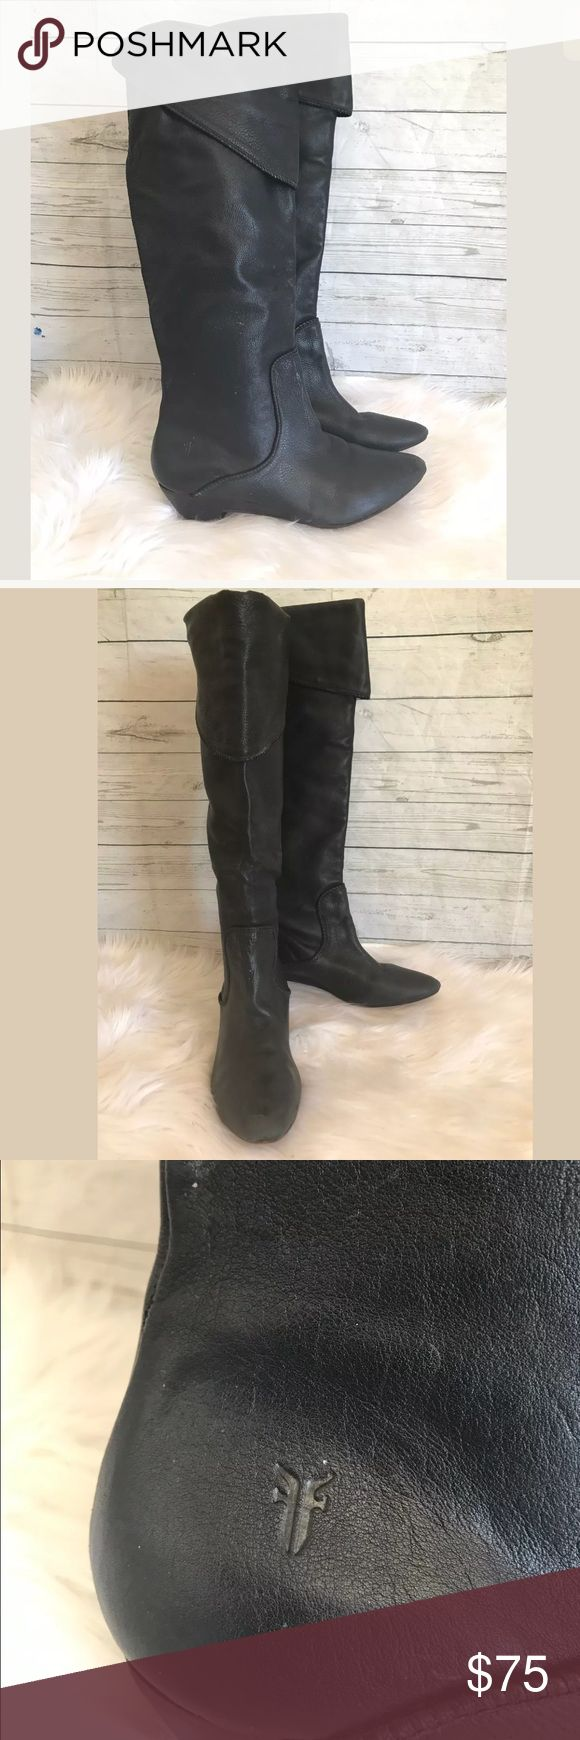 FRYE black leather knee high wedge boots size 8.5 Stitching flaw on back of heels, (see images) and wear on toe. Normal scuffing and creasing. Frye Shoes Over the Knee Boots